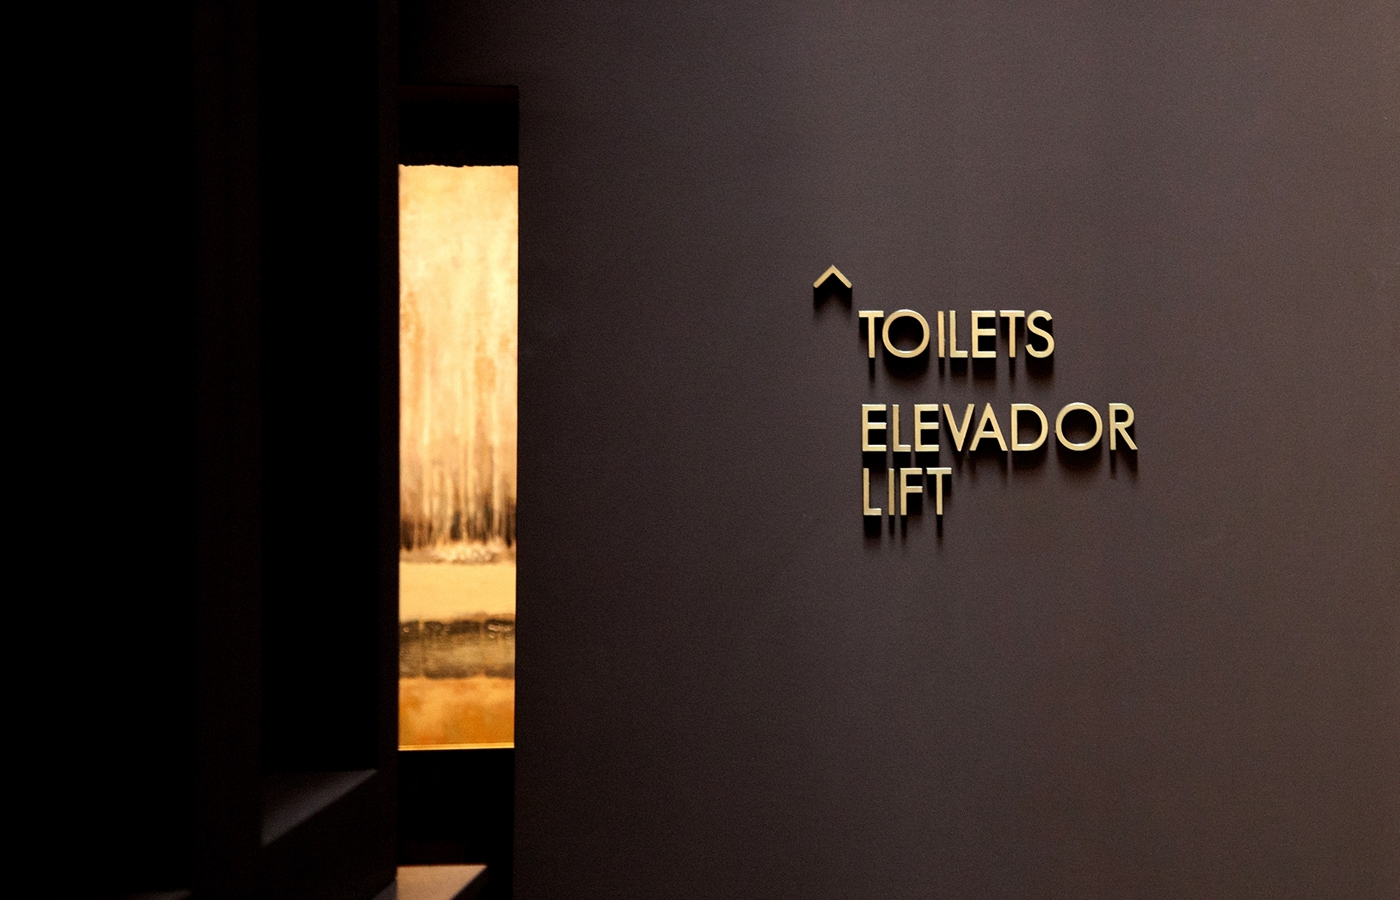 LONGROIVA HOTEL TERMAL SPA SIGNAGE on Behance